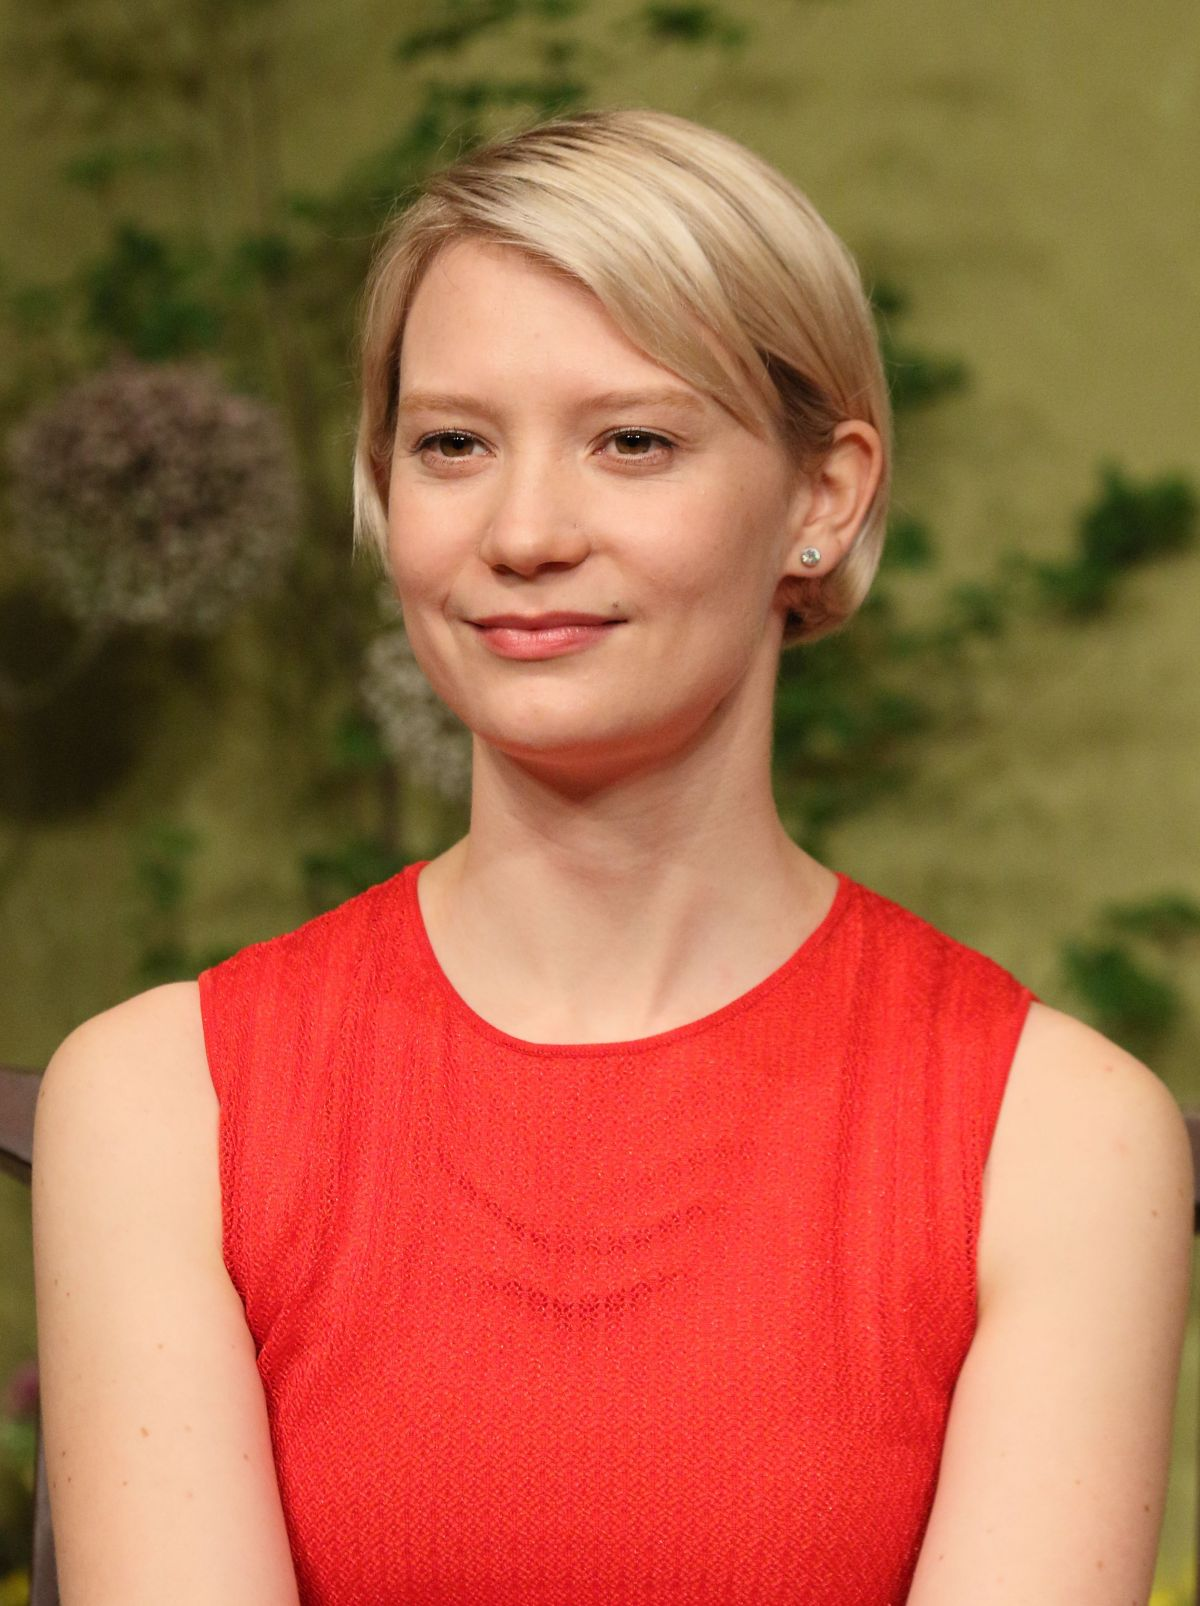 Mia At The 2016 Fashion Prom Dress Promo: MIA WASIKOWSKA At Alice Through The Looking Glass Press